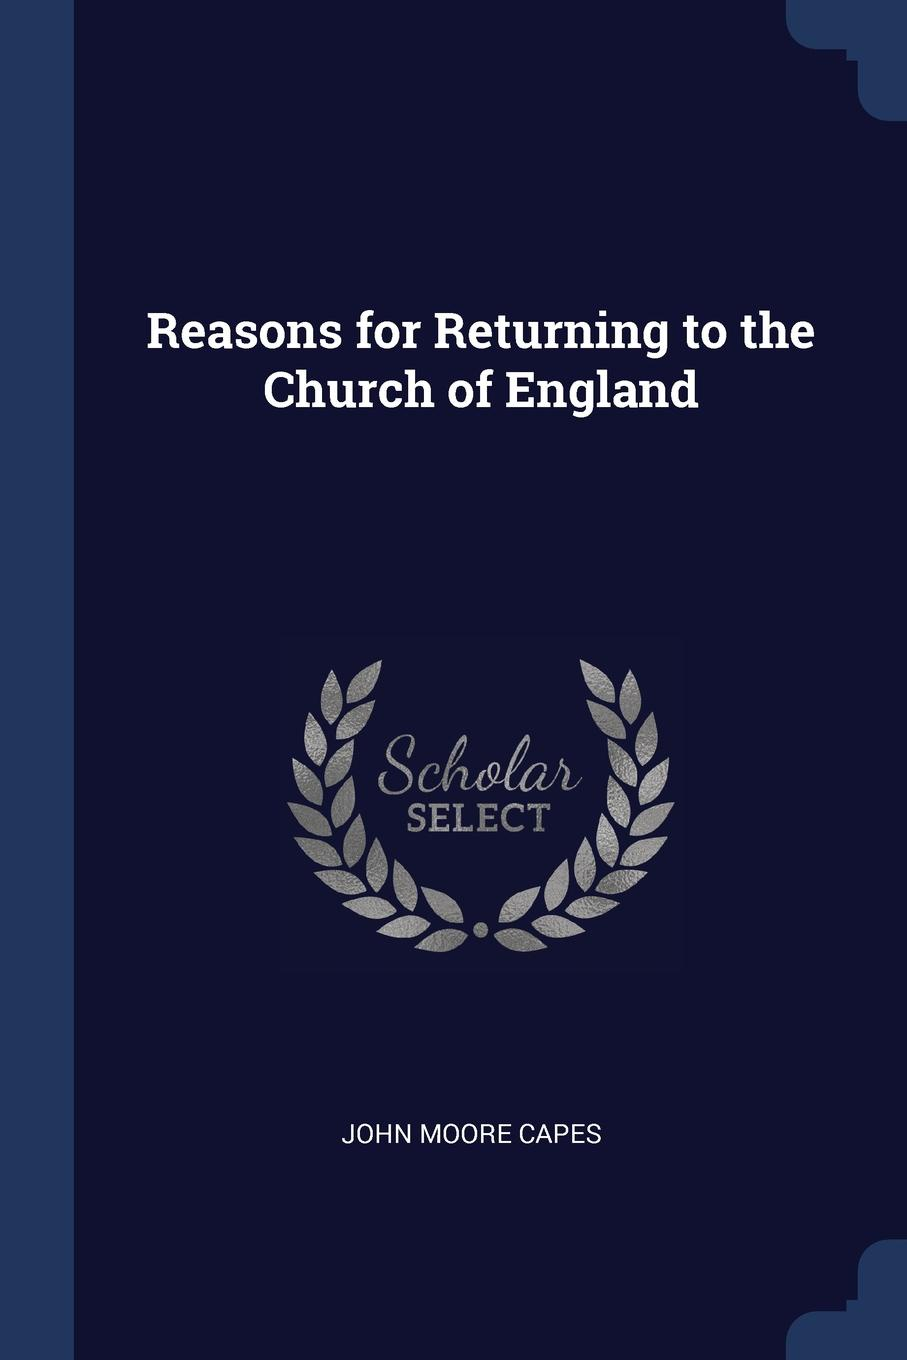 John Moore Capes Reasons for Returning to the Church of England